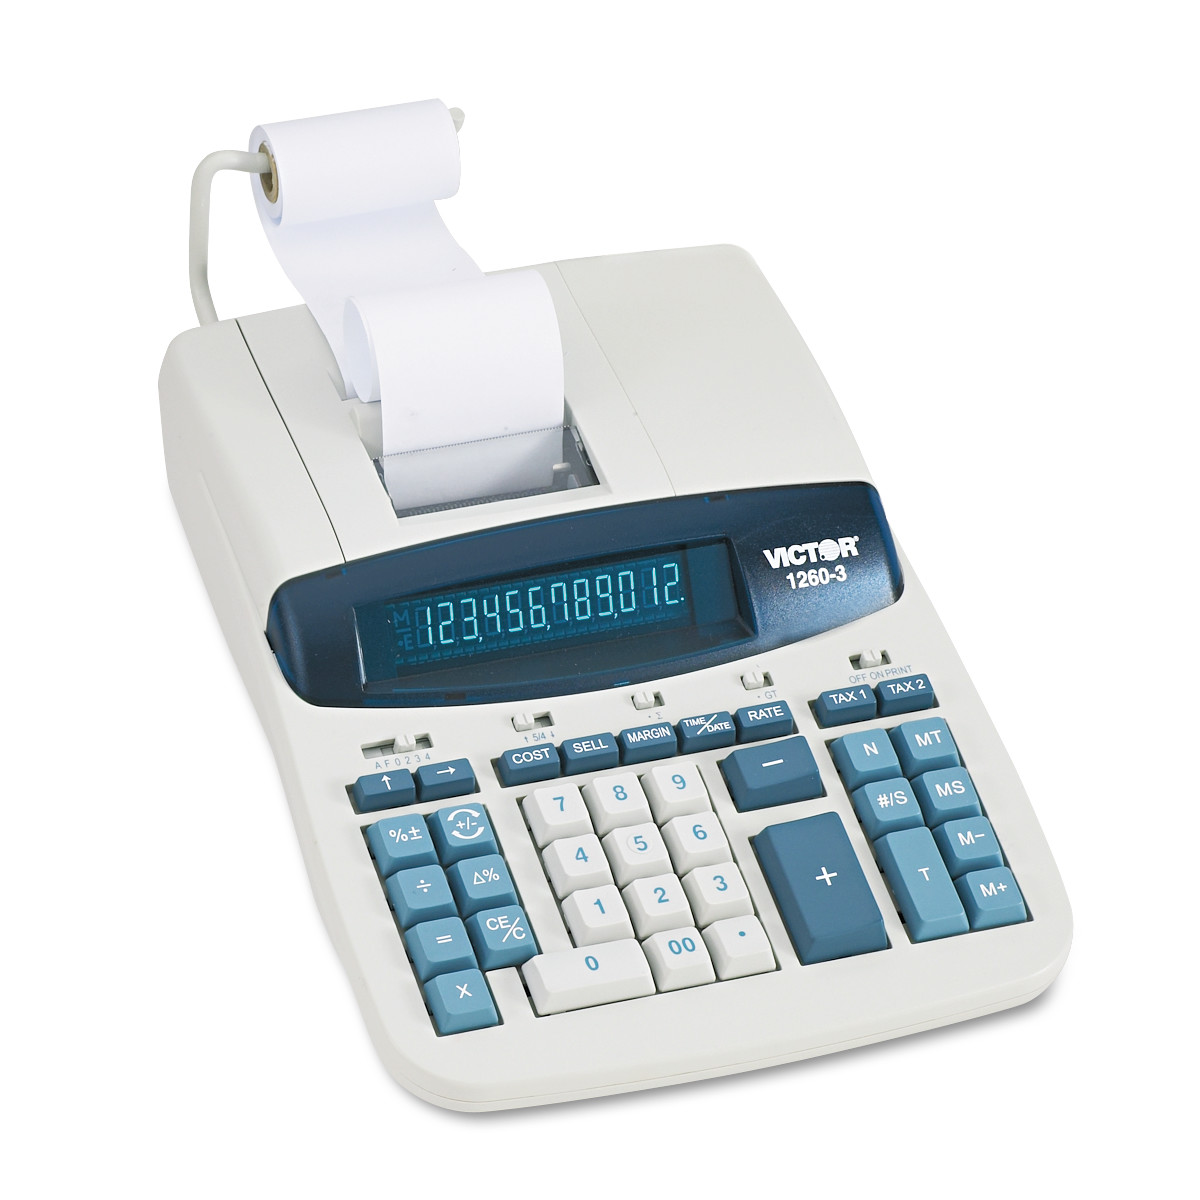 Victor 1260-3 Two-Color Heavy-Duty Printing Calculator, Black/Red Print, 4.6 Lines/Sec -VCT12603